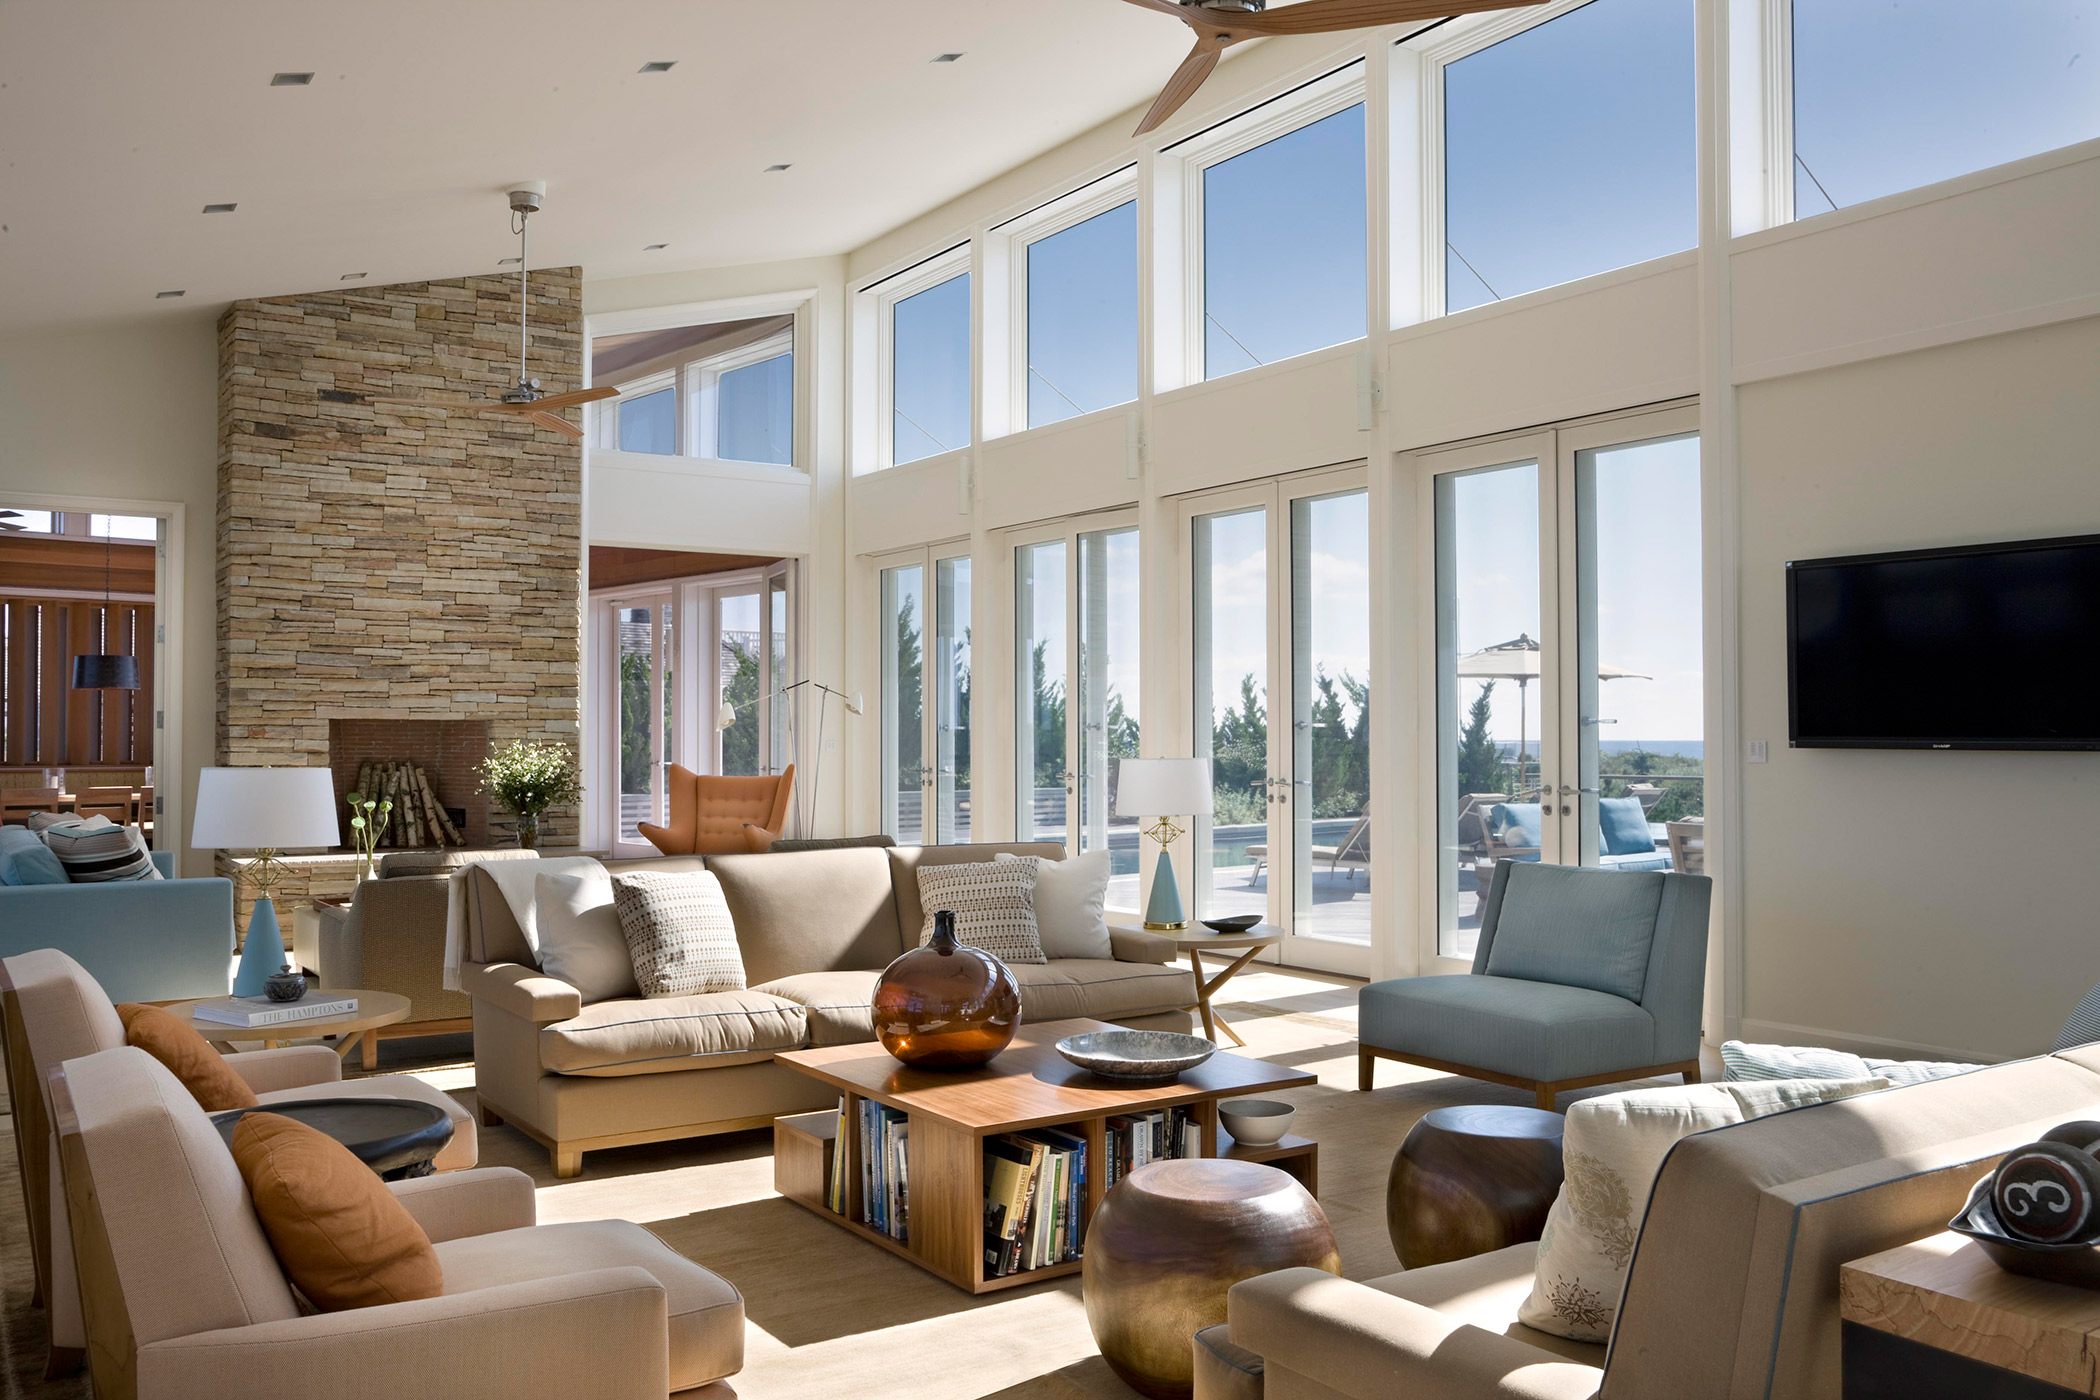 House in Quogue, Hamptons